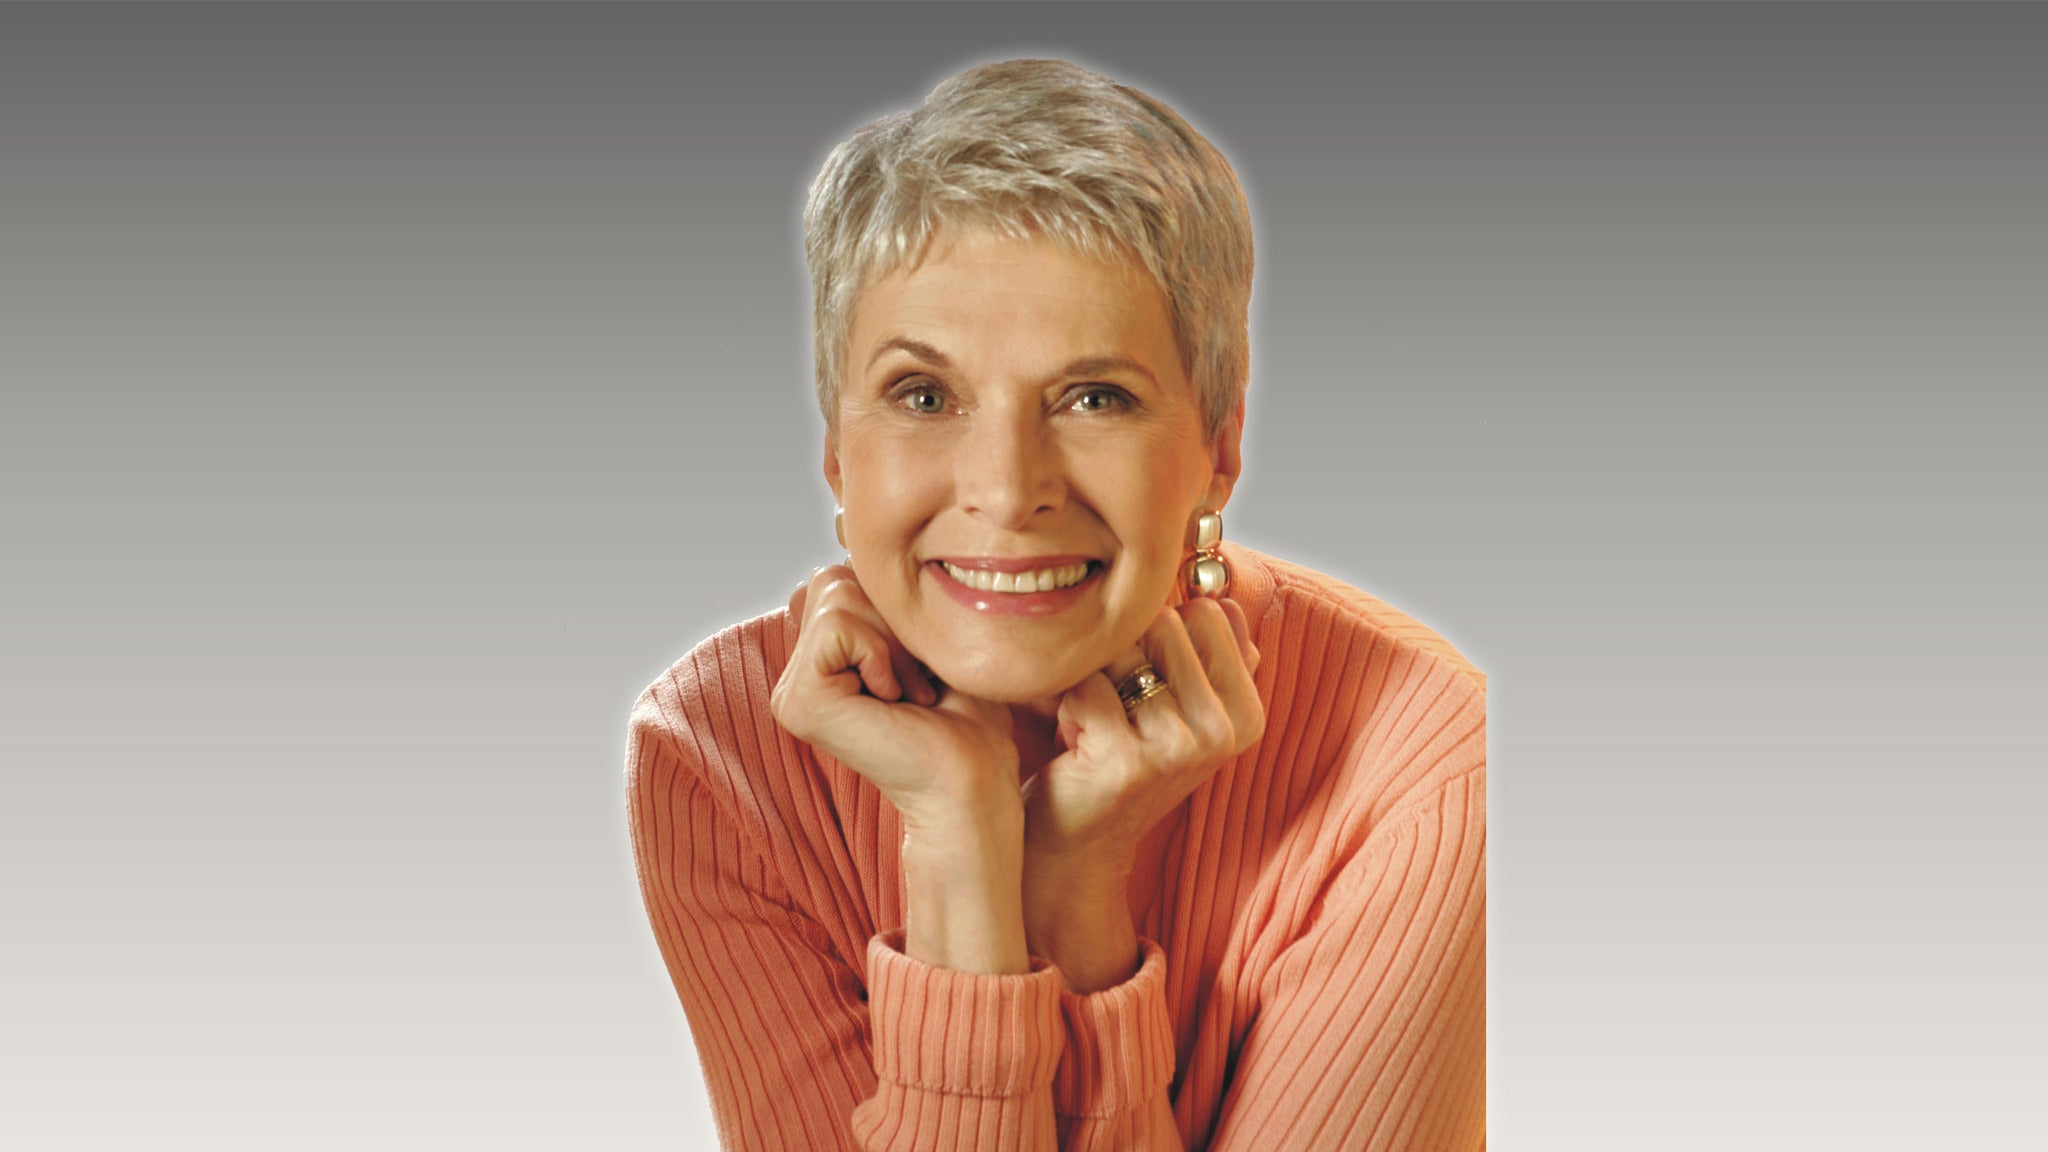 Jeanne Robertson at Parker Playhouse - Ft Lauderdale, FL 33304